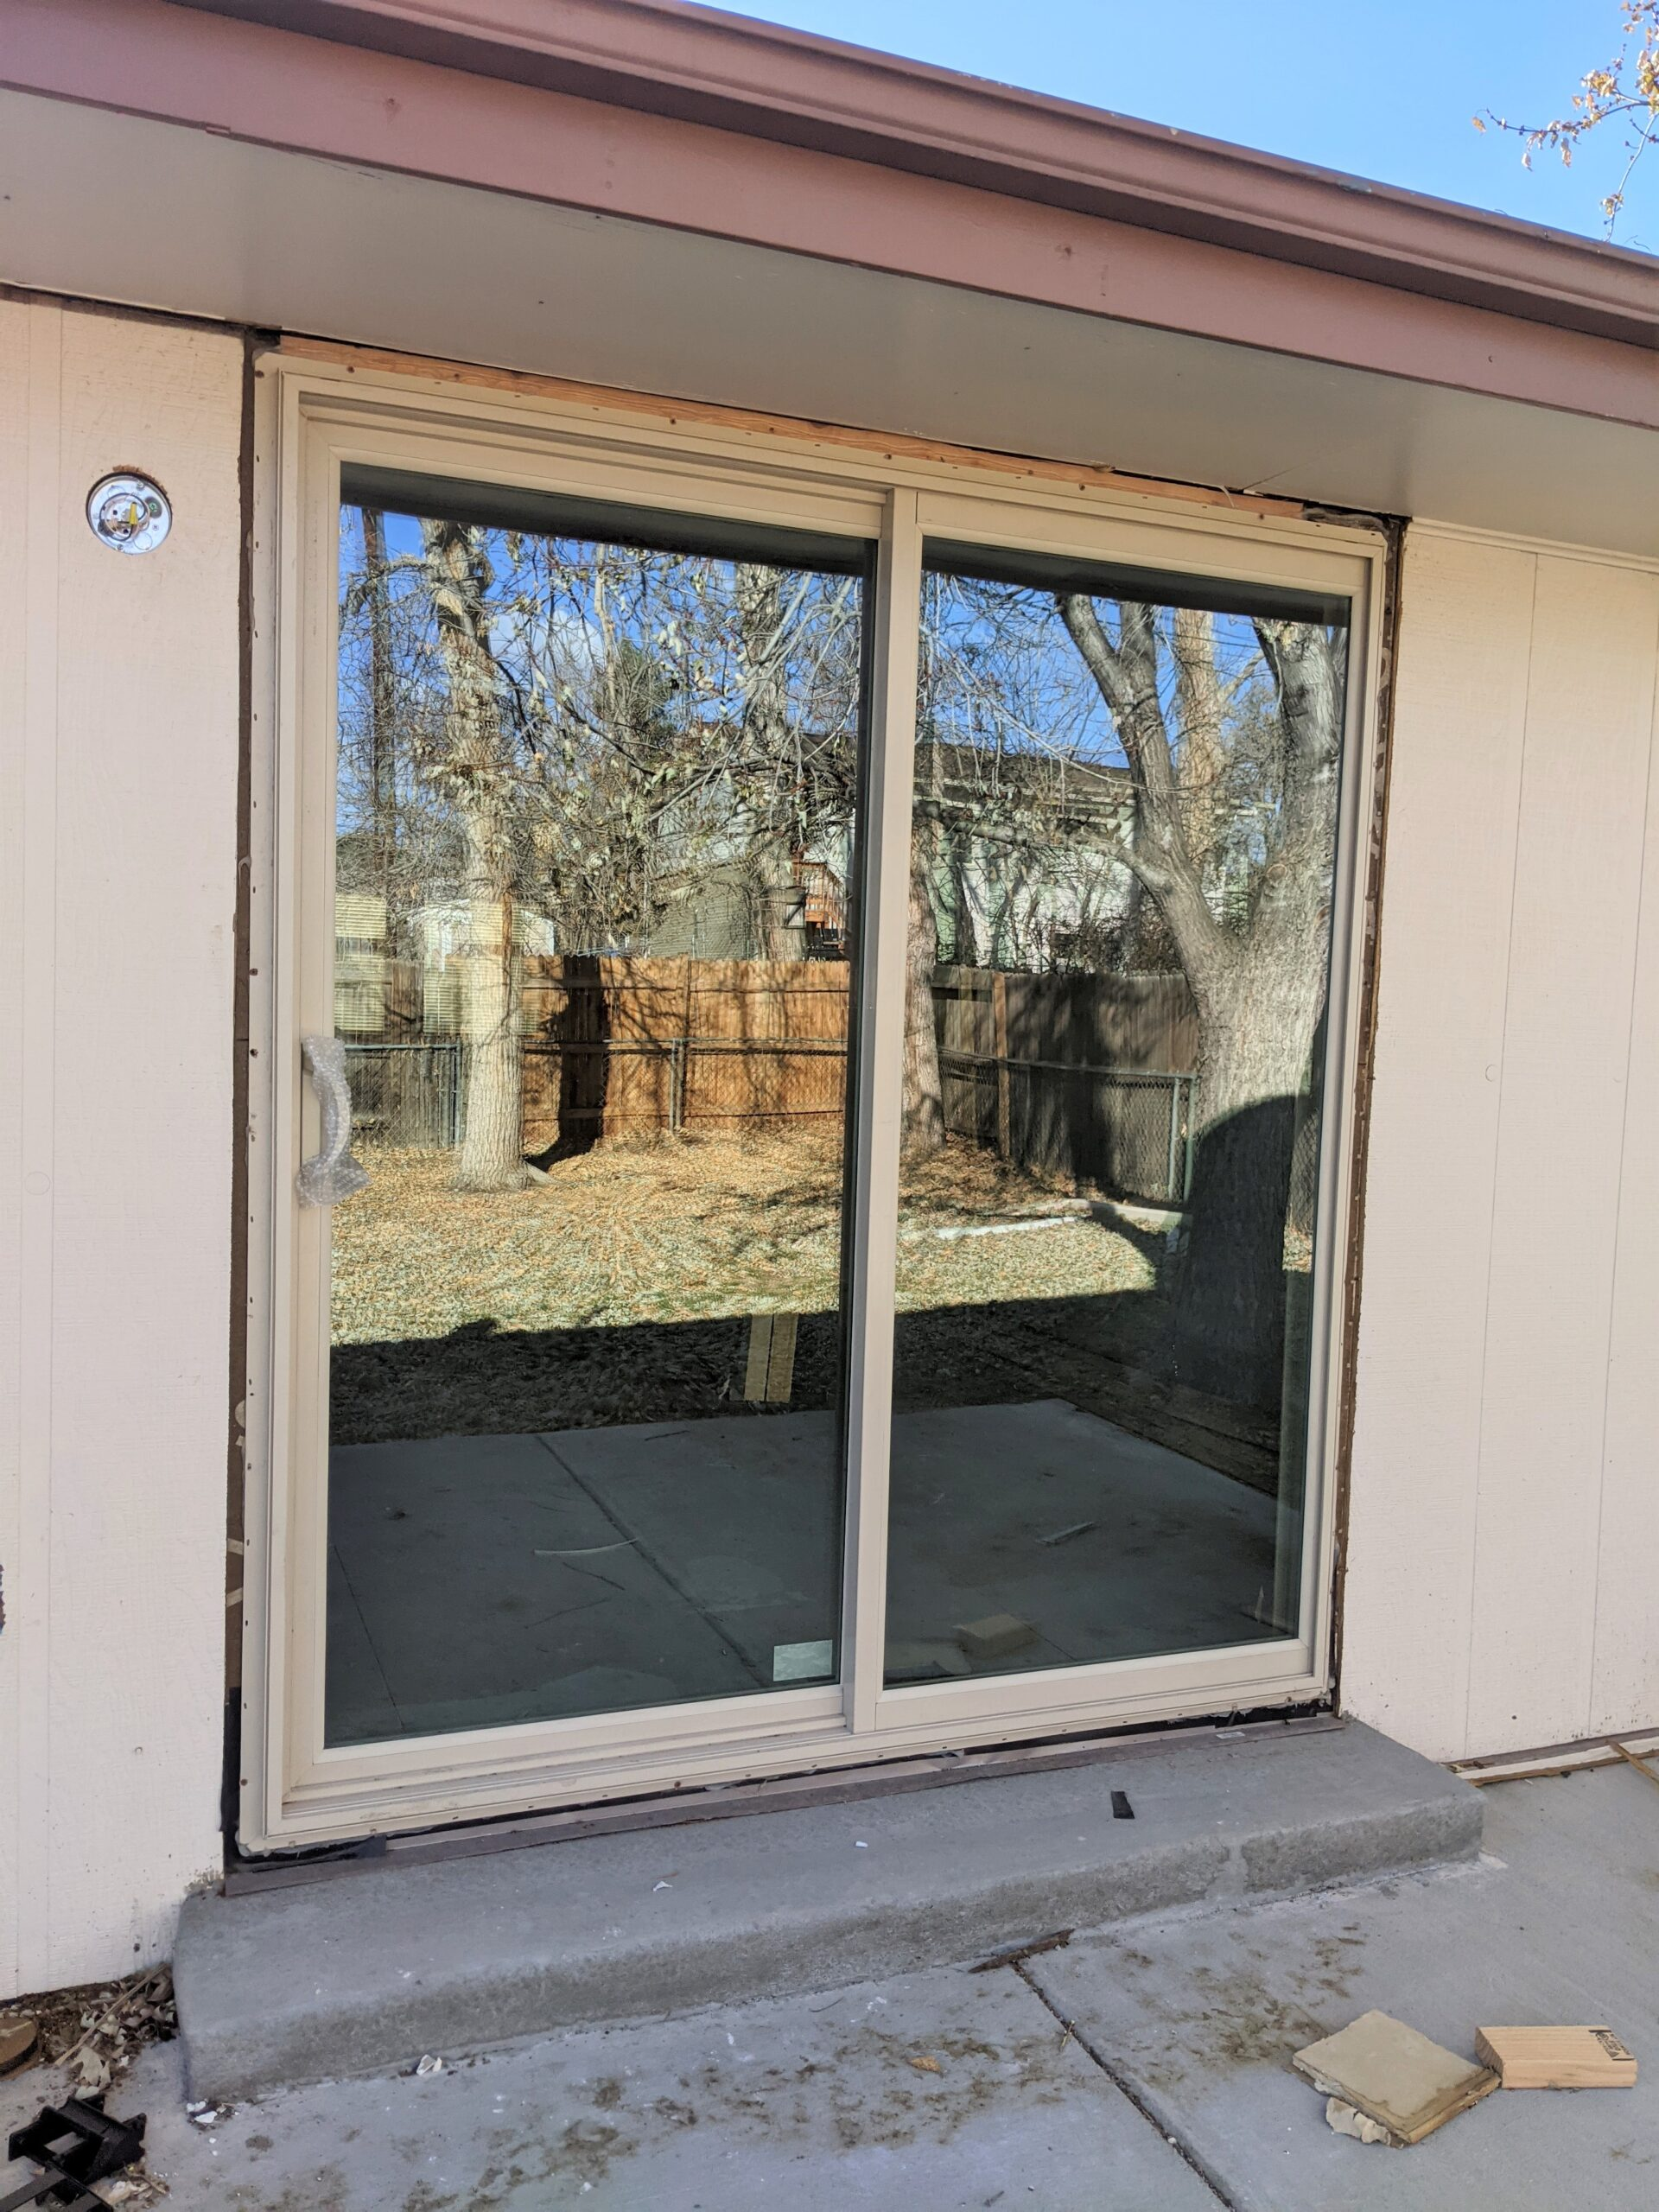 AFTER We add insulation in the gap between the door frame and wall as part of the installation of exterior doors.